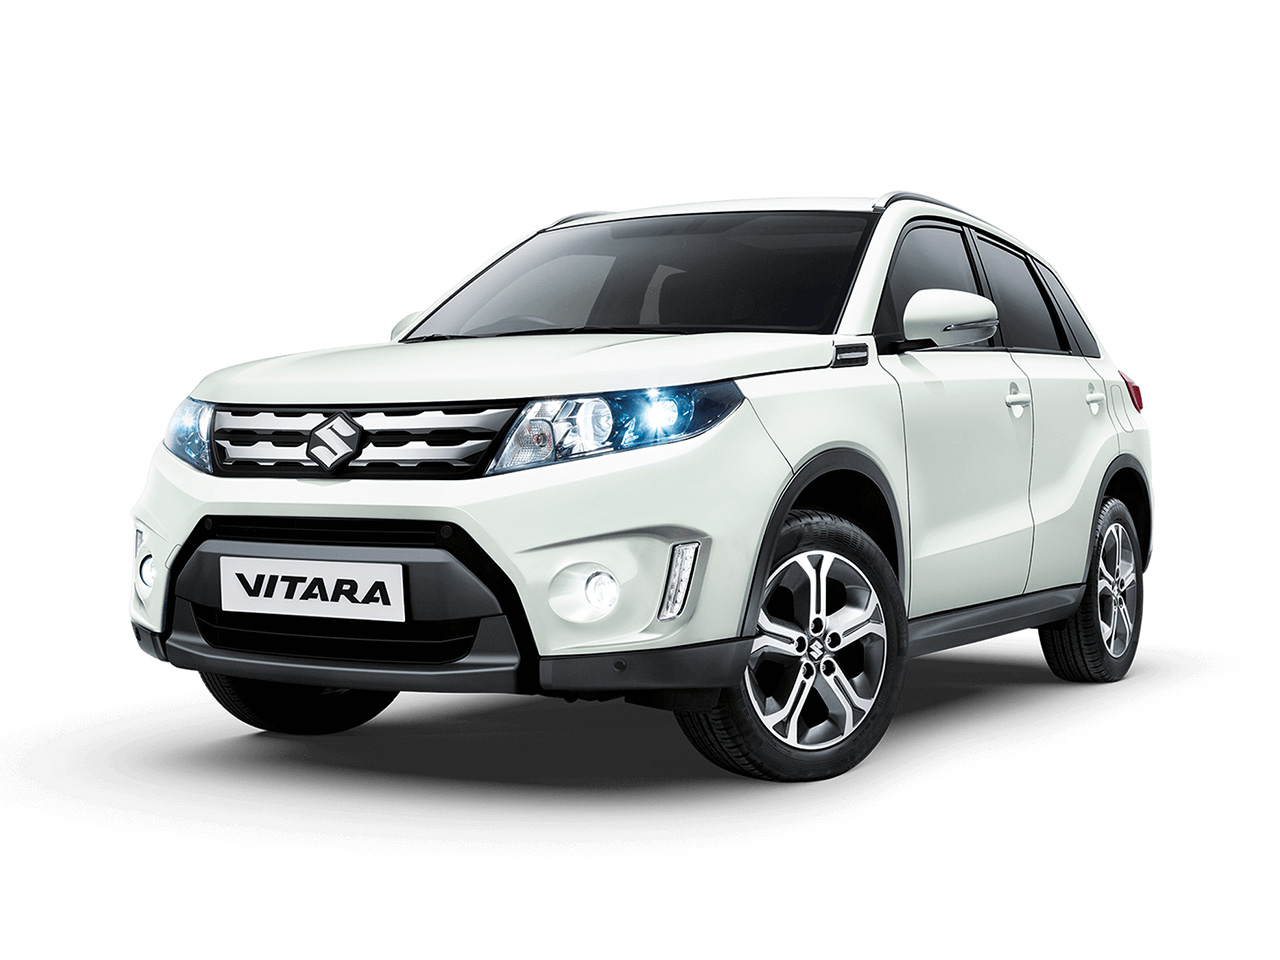 2018 Suzuki Vitara Prices In Qatar Gulf Specs Amp Reviews